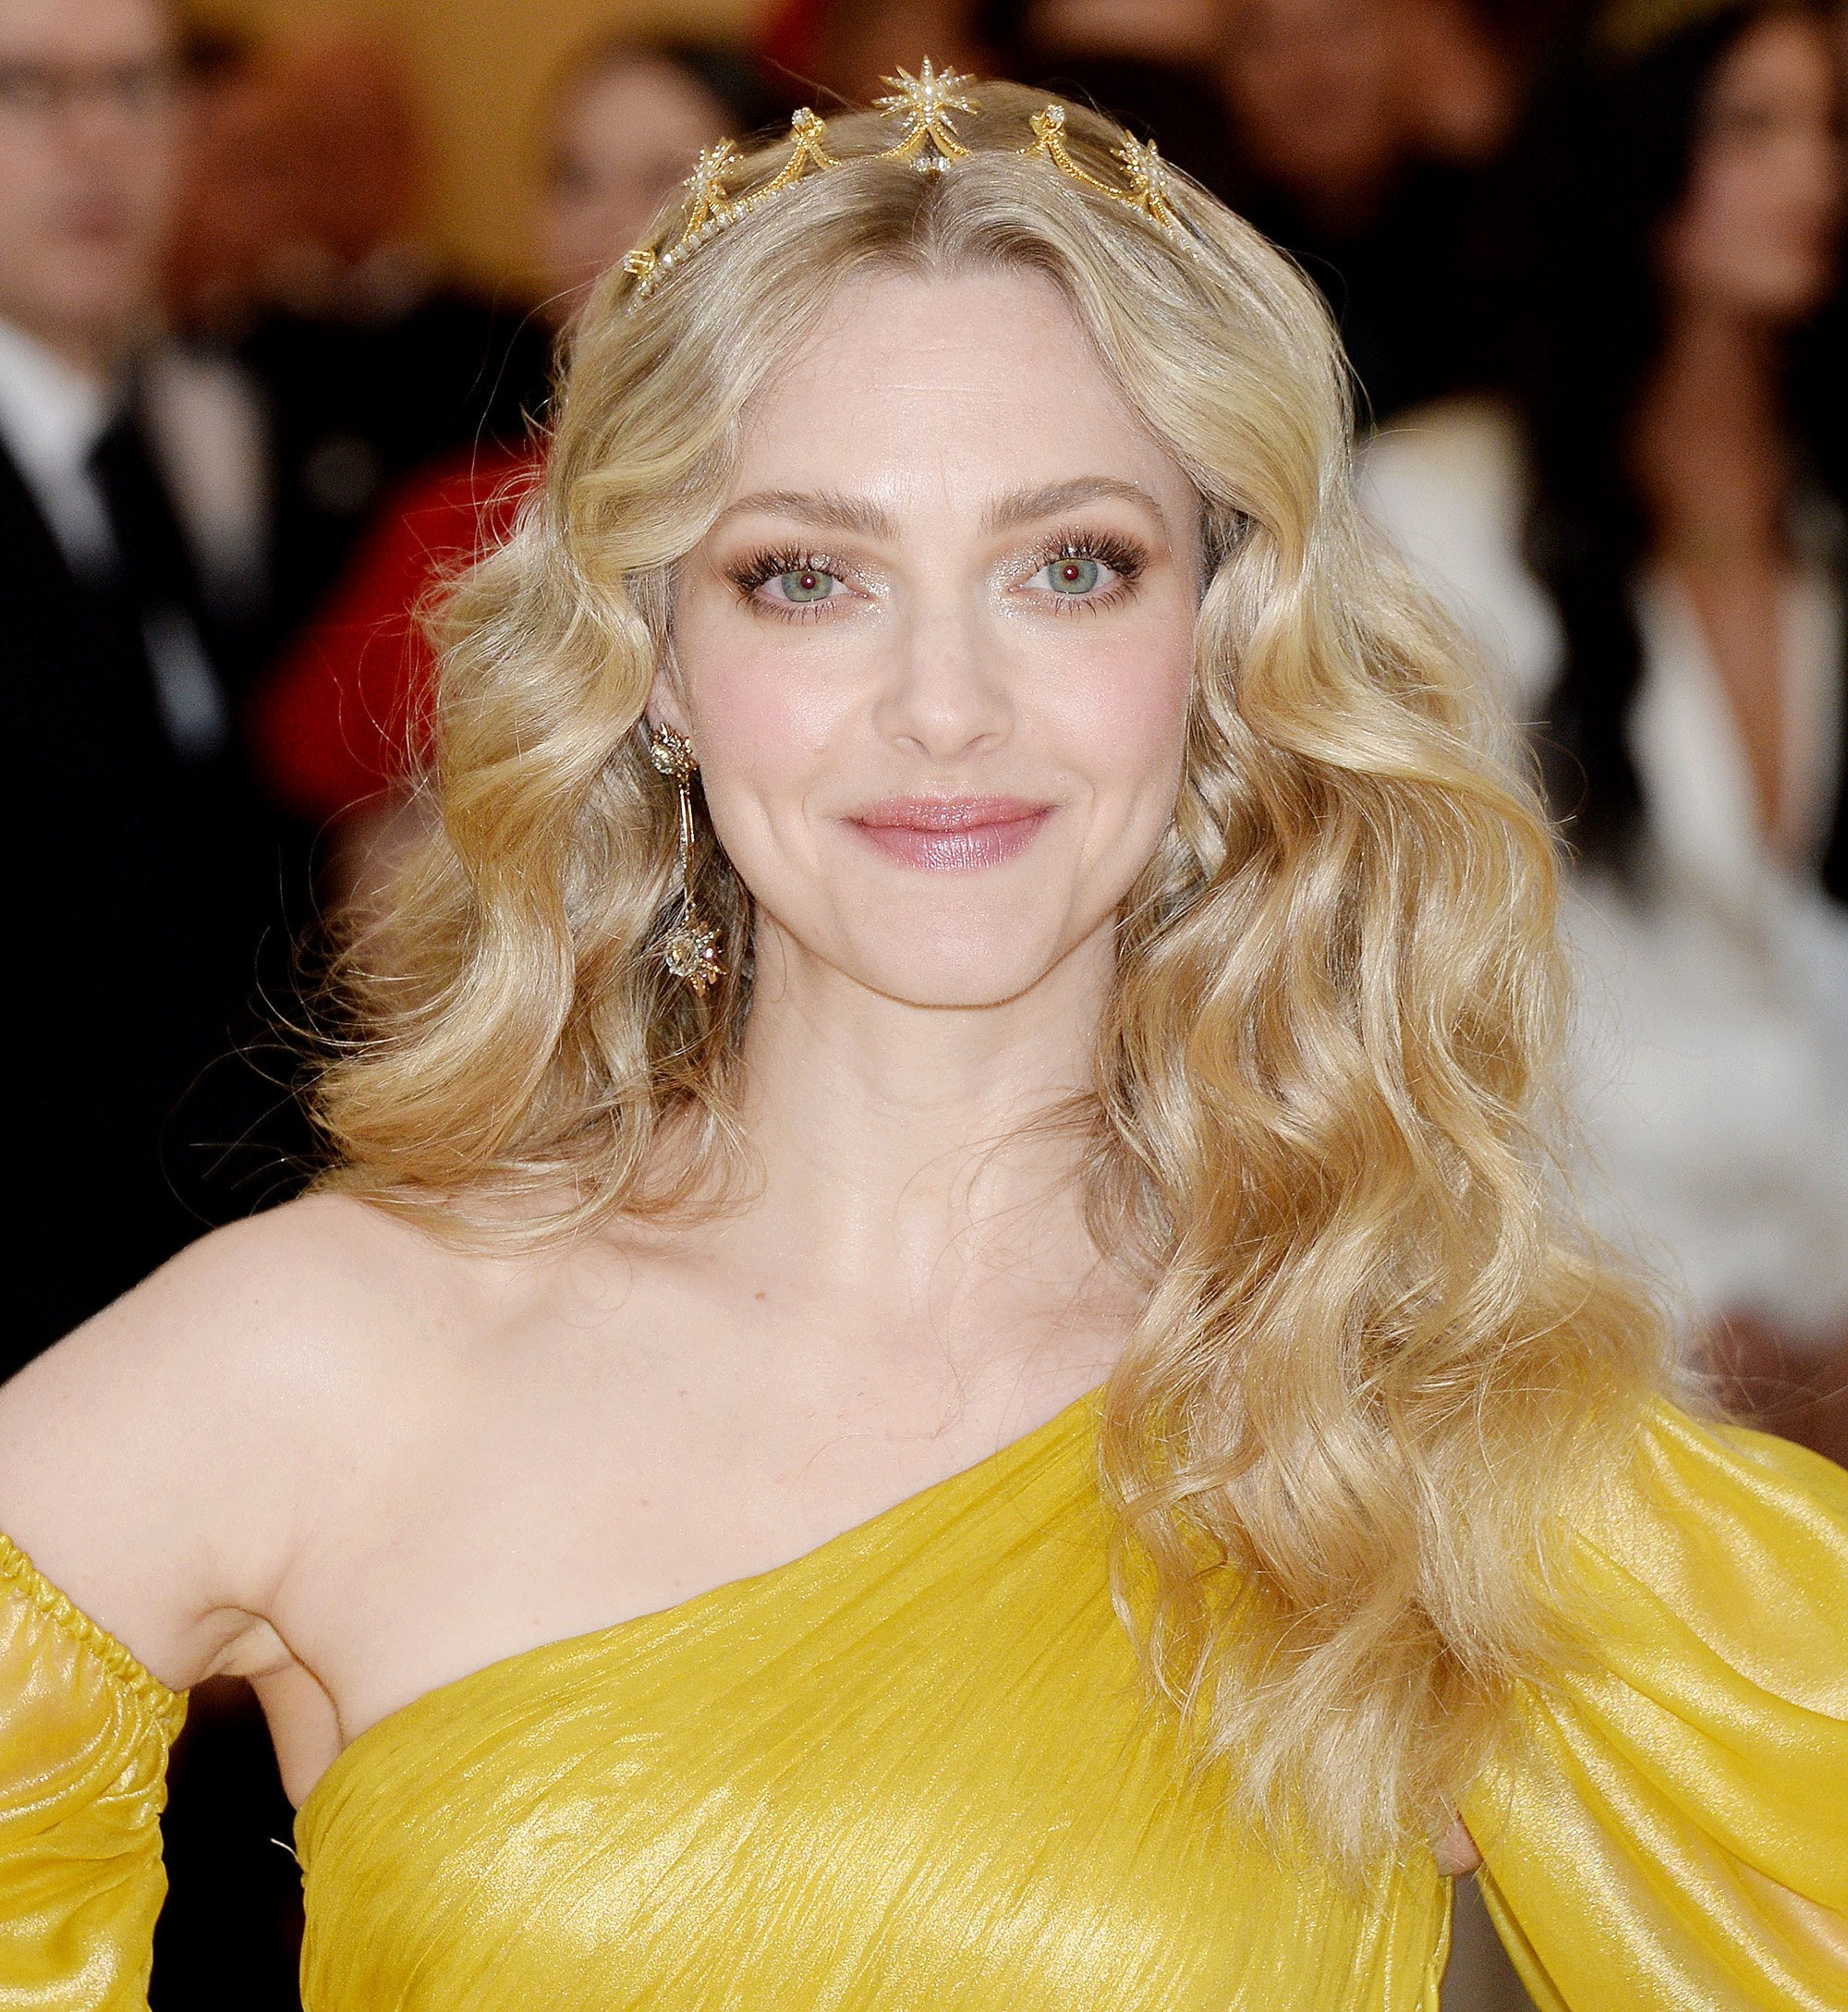 Curly hair hairstyles: Amanda Seyfried long golden blonde naturally curly hair with gold tiara headband wearing a one shoulder yellow dress